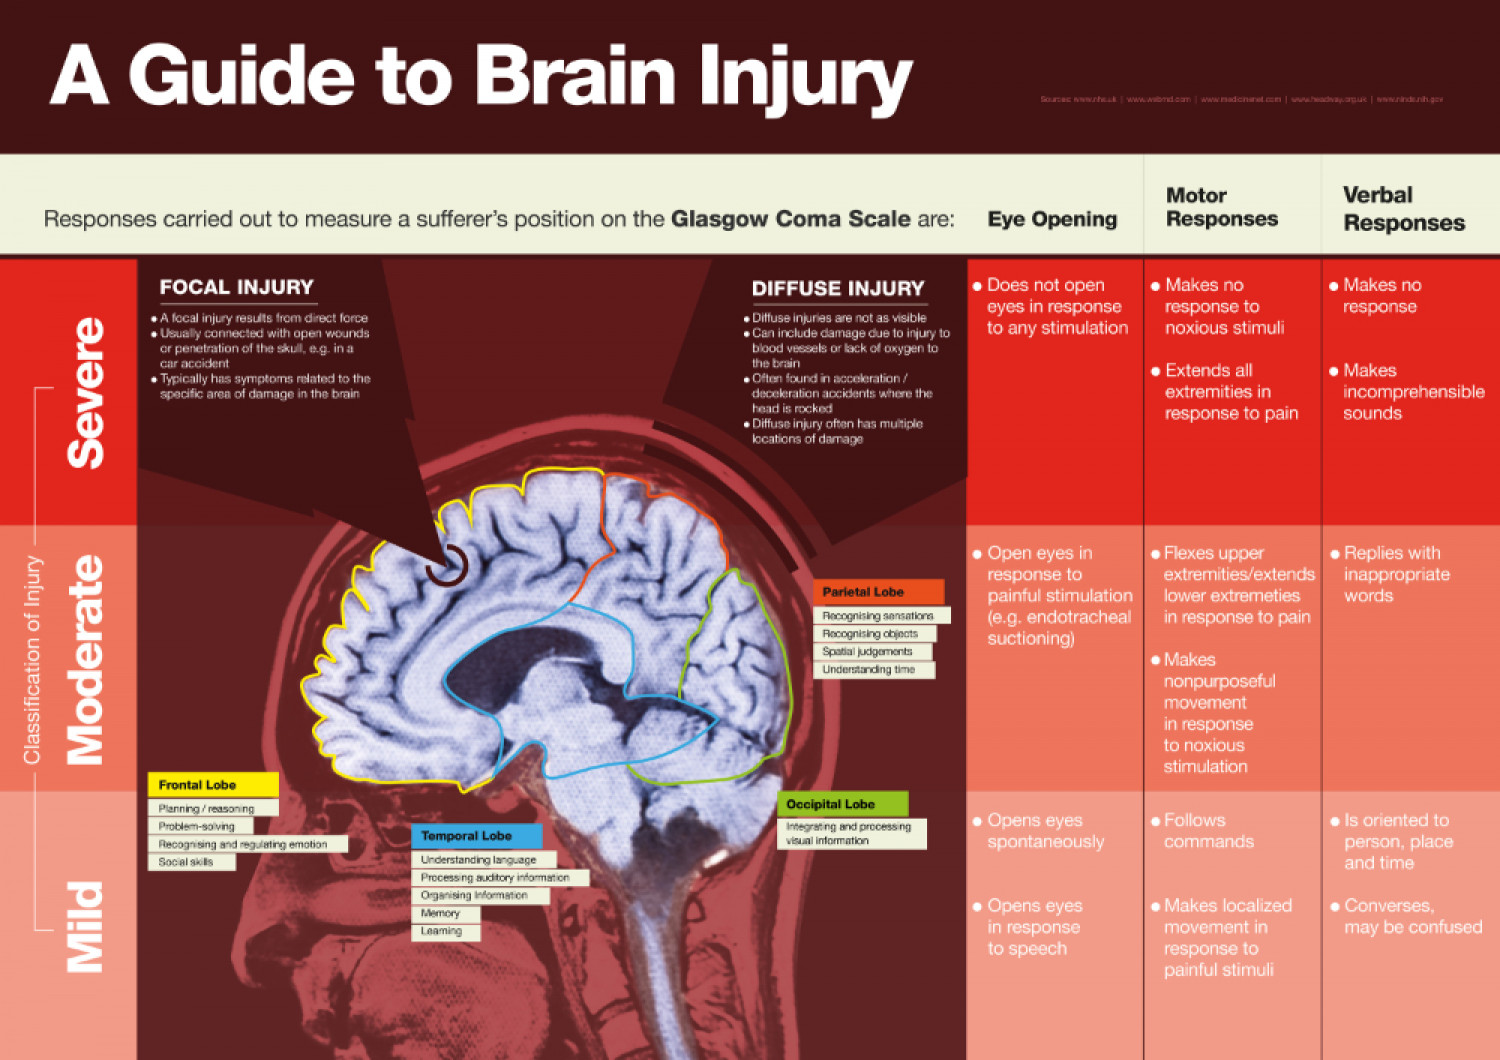 A Guide to Brain Injury Infographic